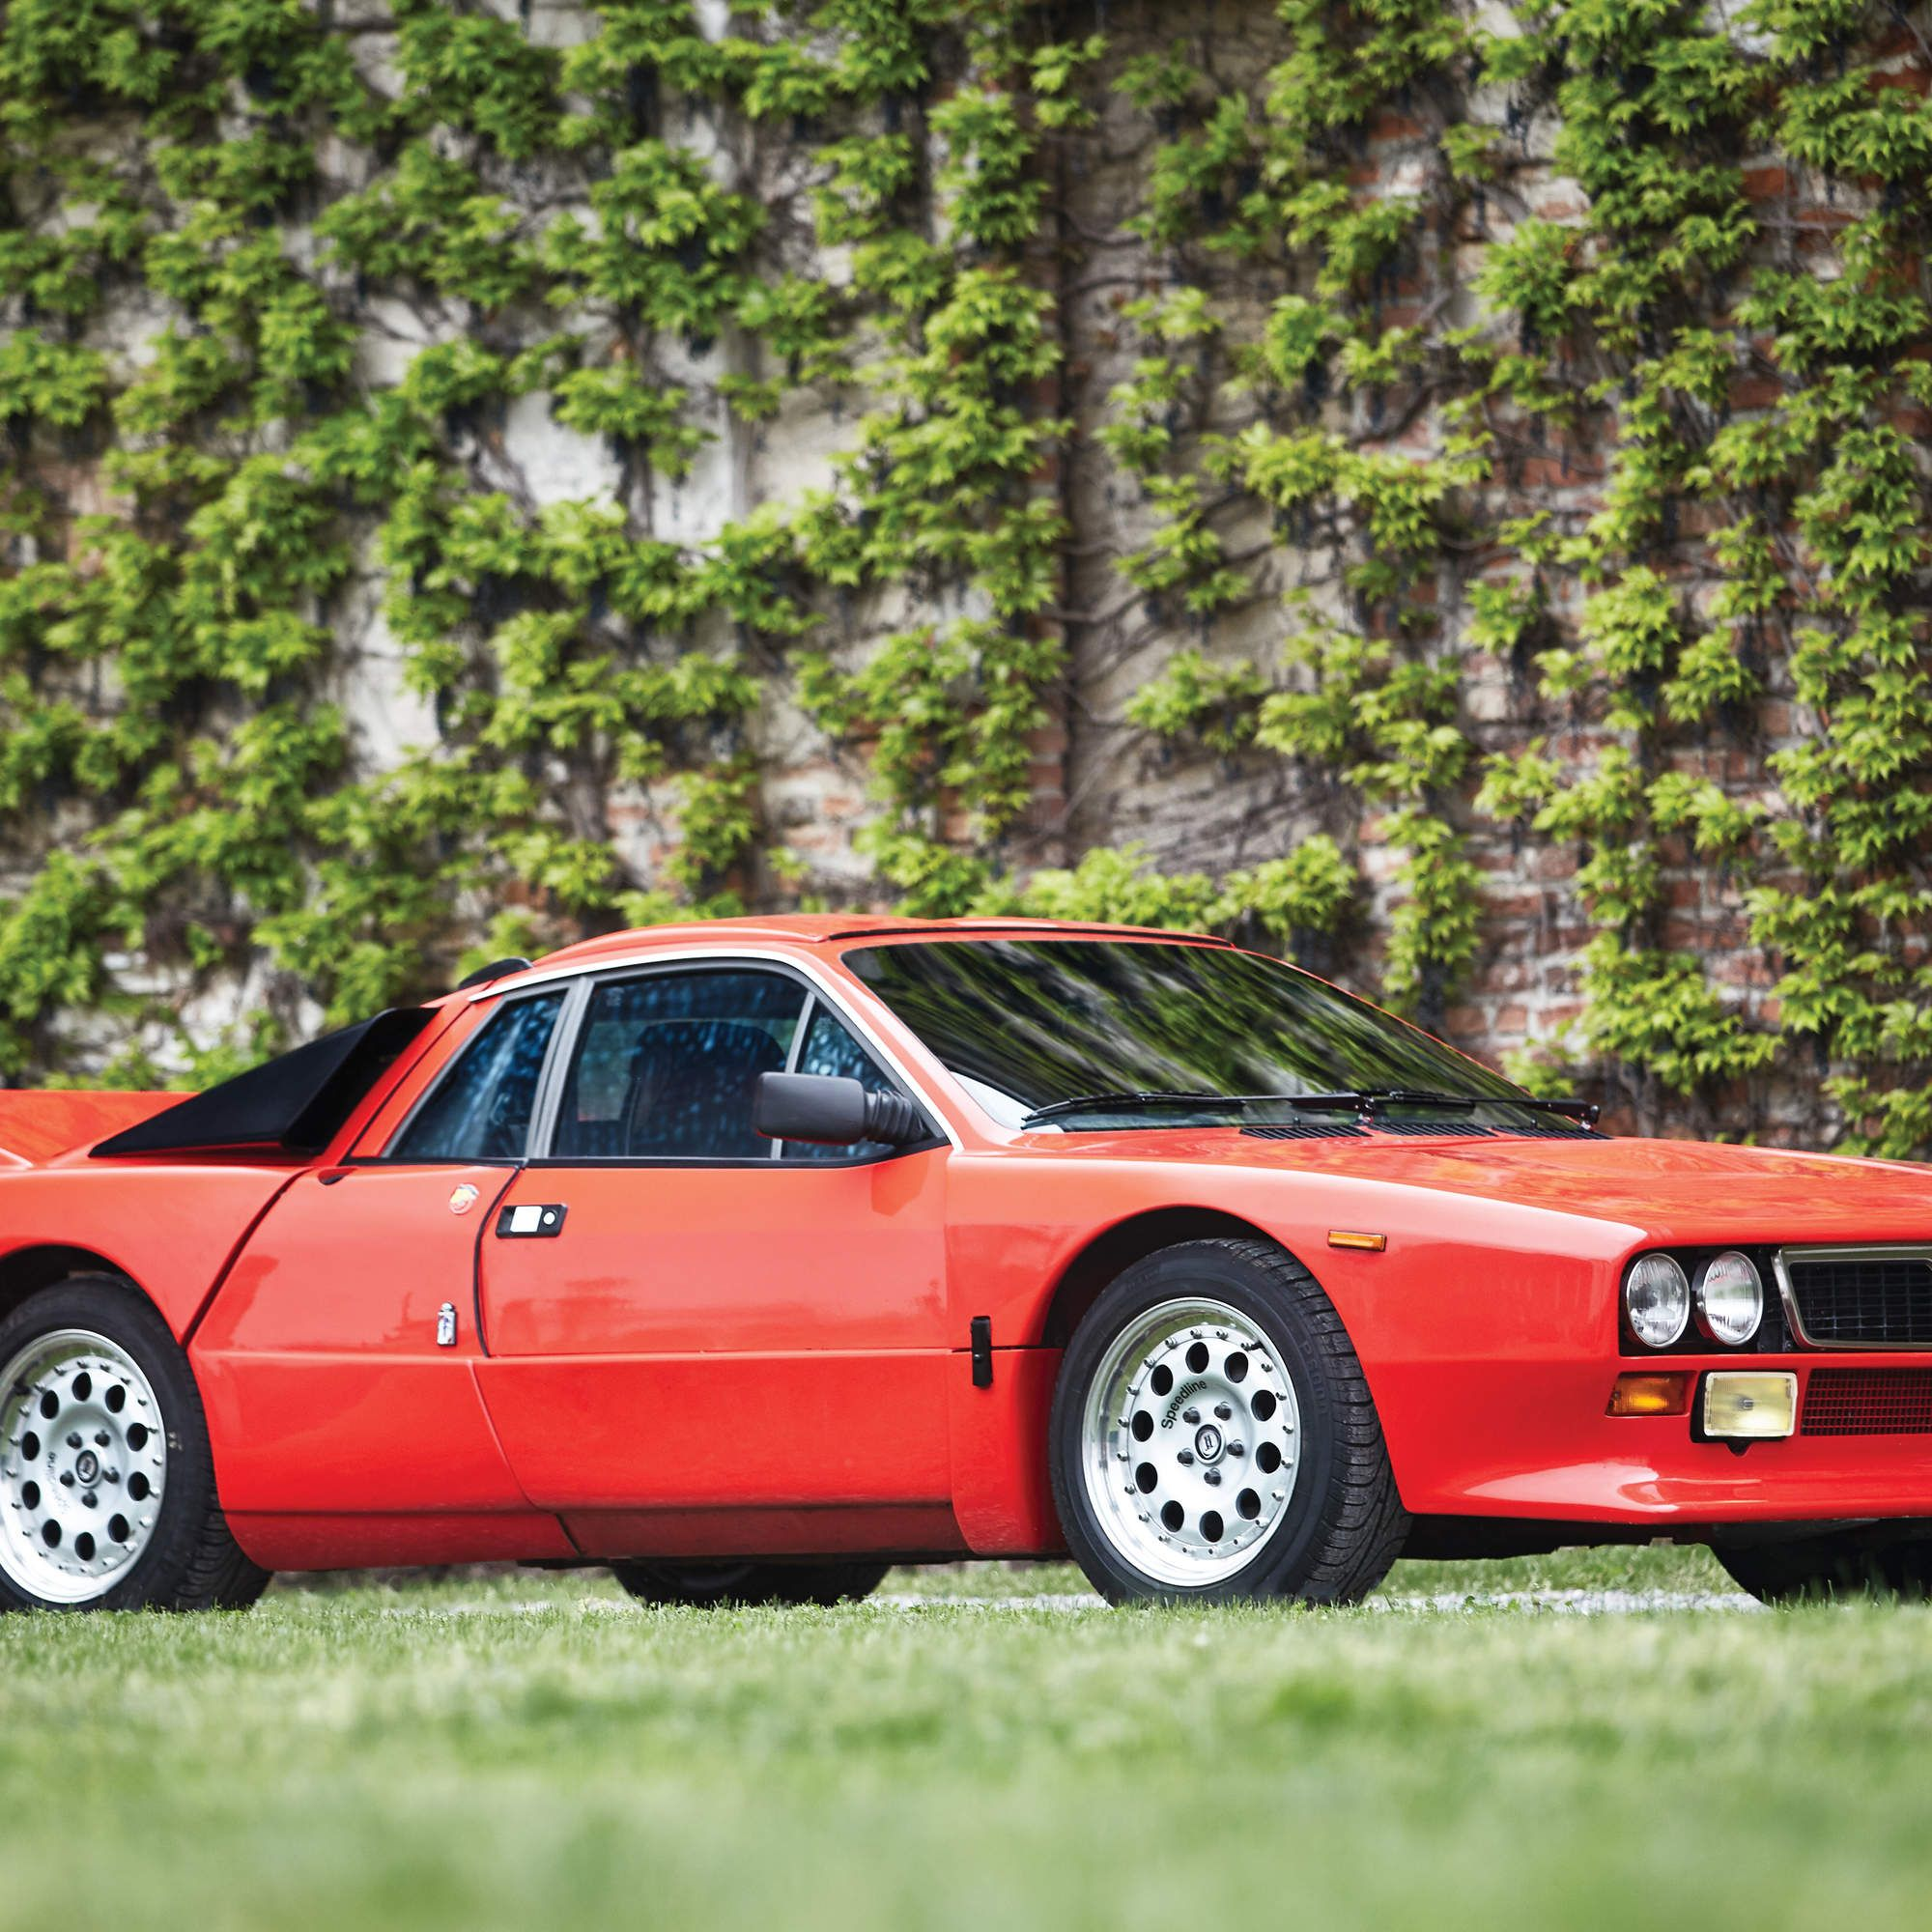 The 10 Coolest Cars For Sale At The Monaco Auction This